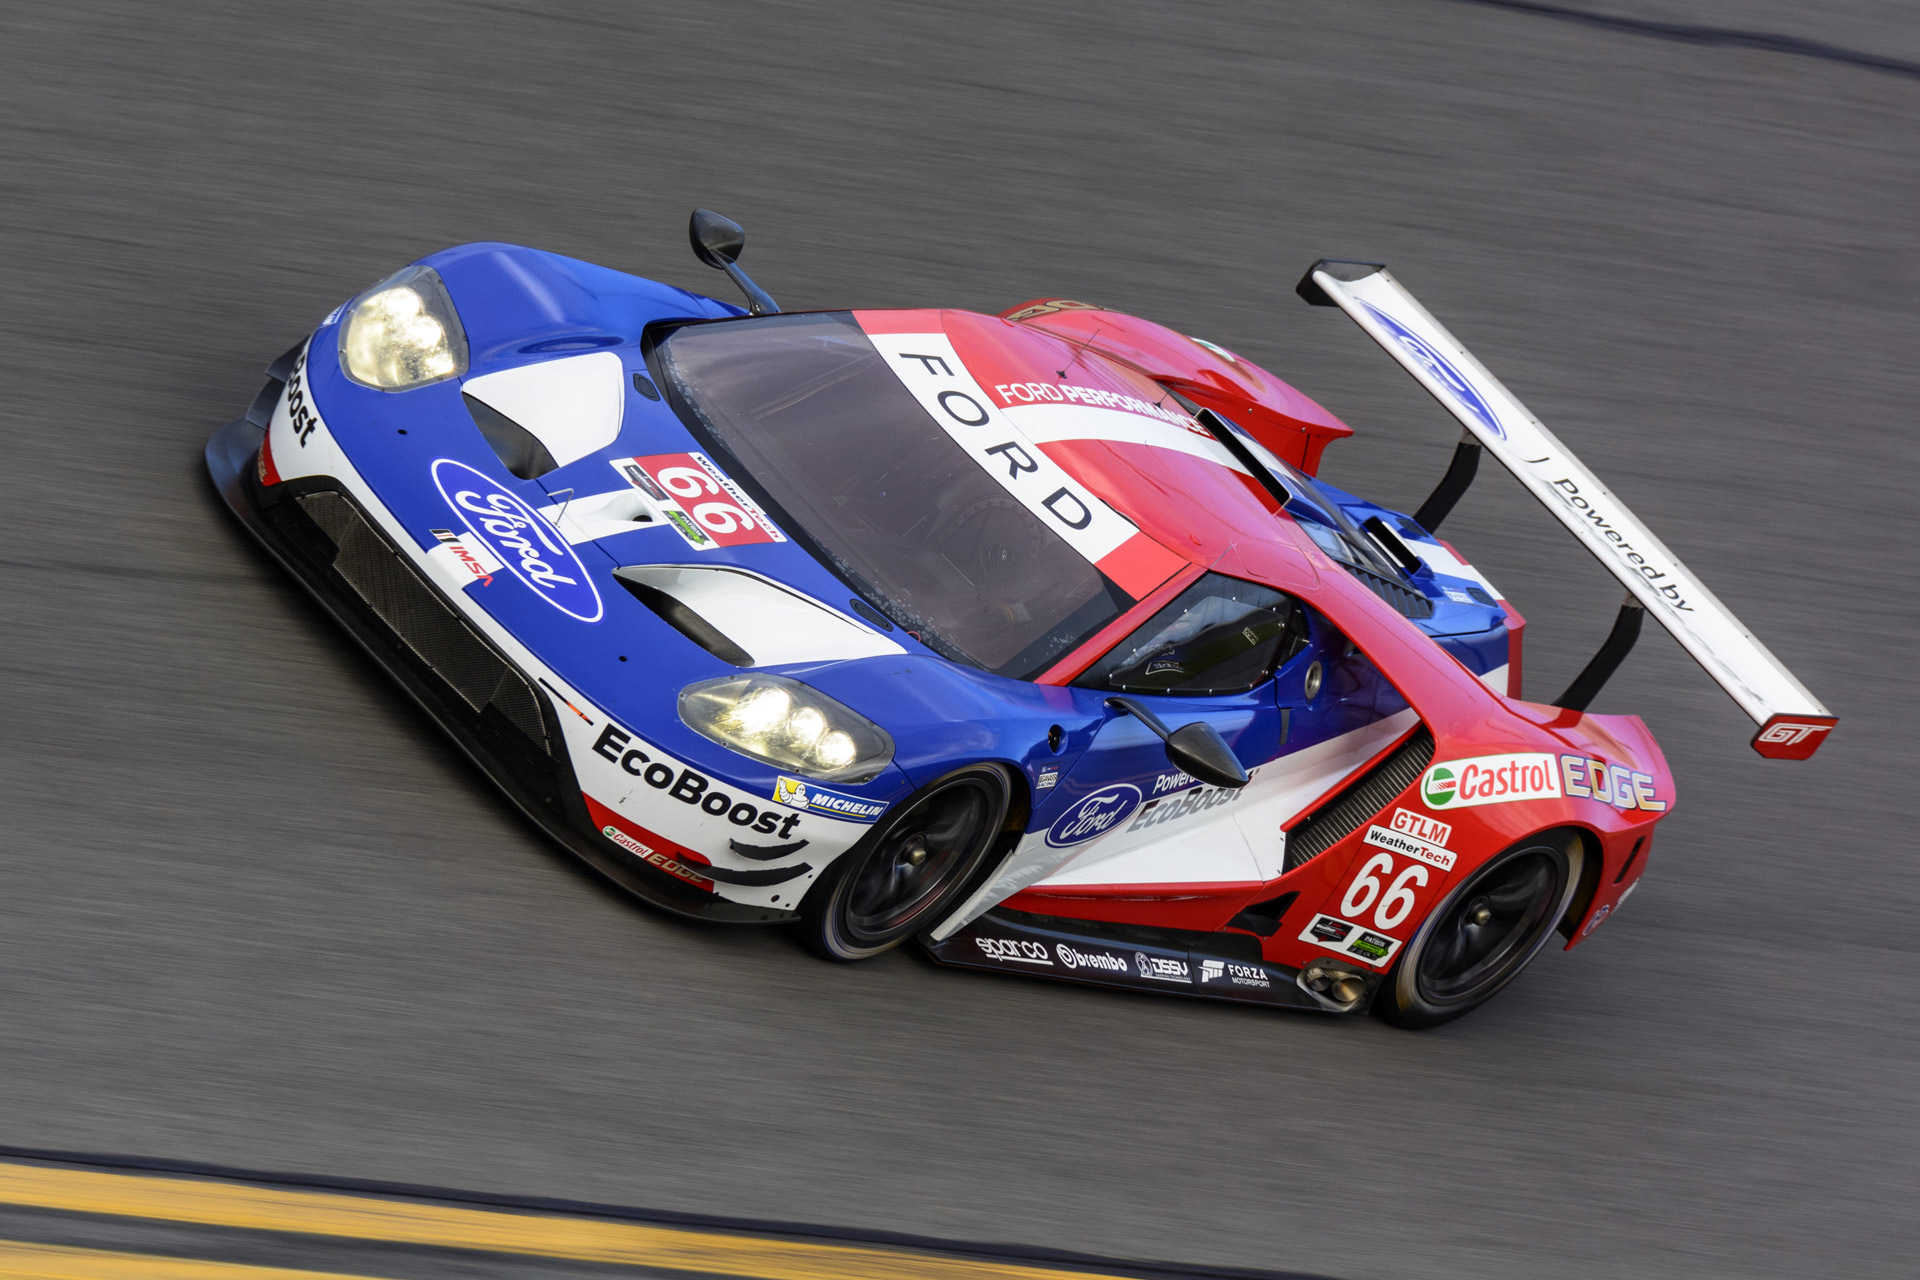 Ford GT Drivers For 2016 United SportsCar Ch&ionship Announced Video & Ford GT Drivers For 2016 United SportsCar Championship Announced ... markmcfarlin.com